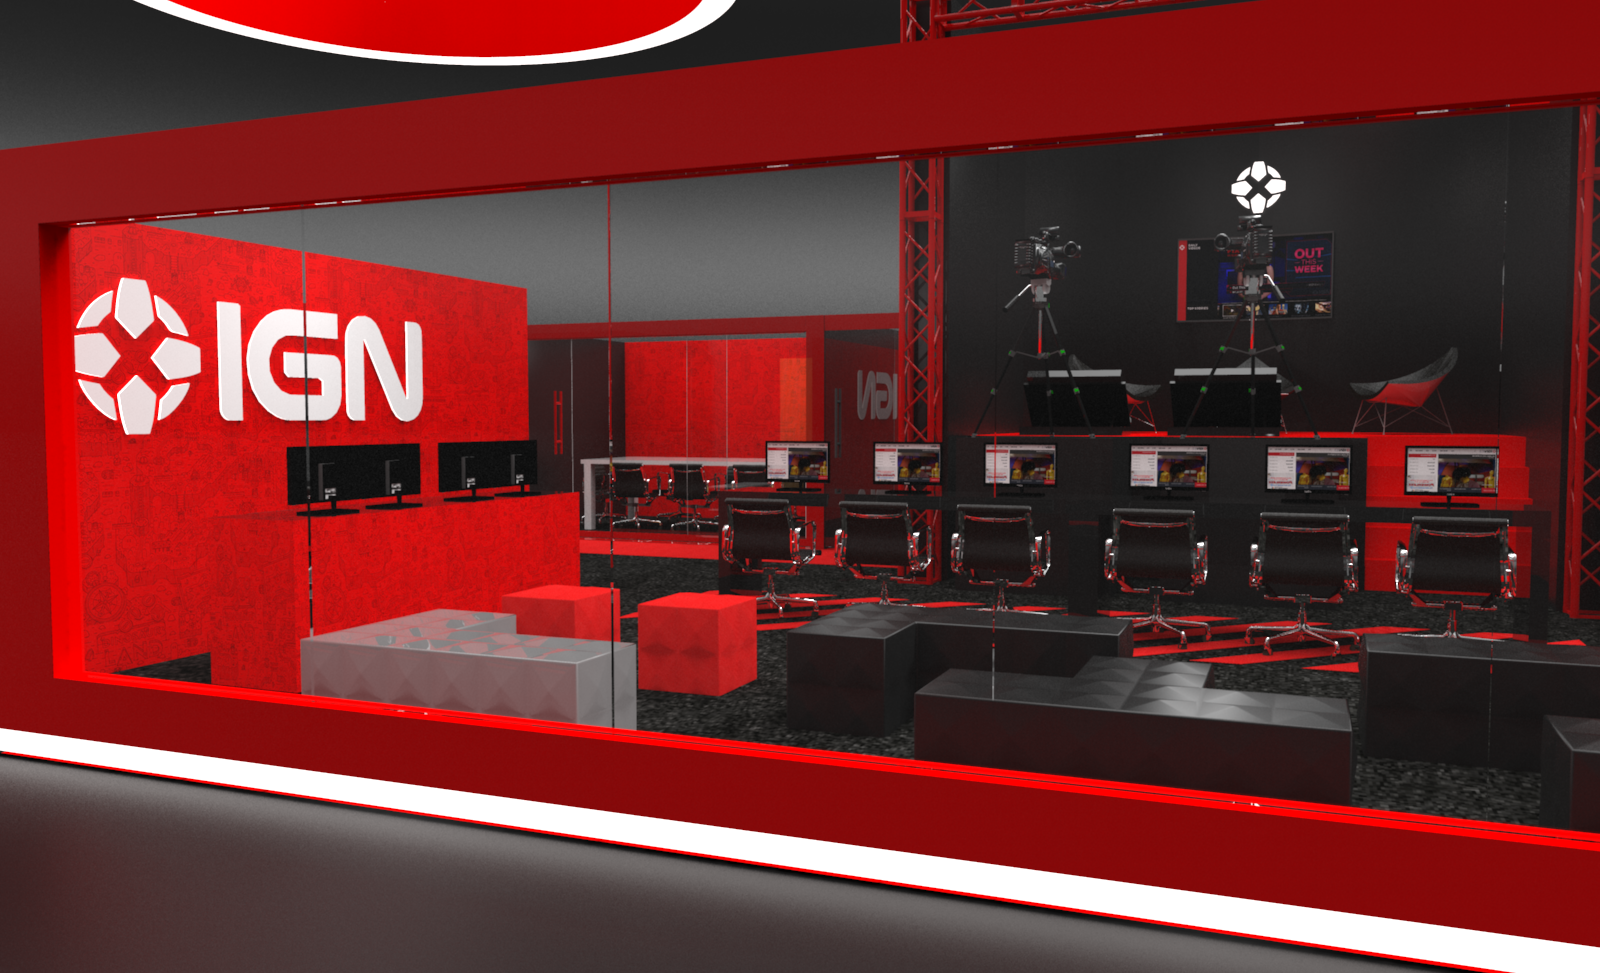 IGN_E3_Booth_R3_Opt2.76